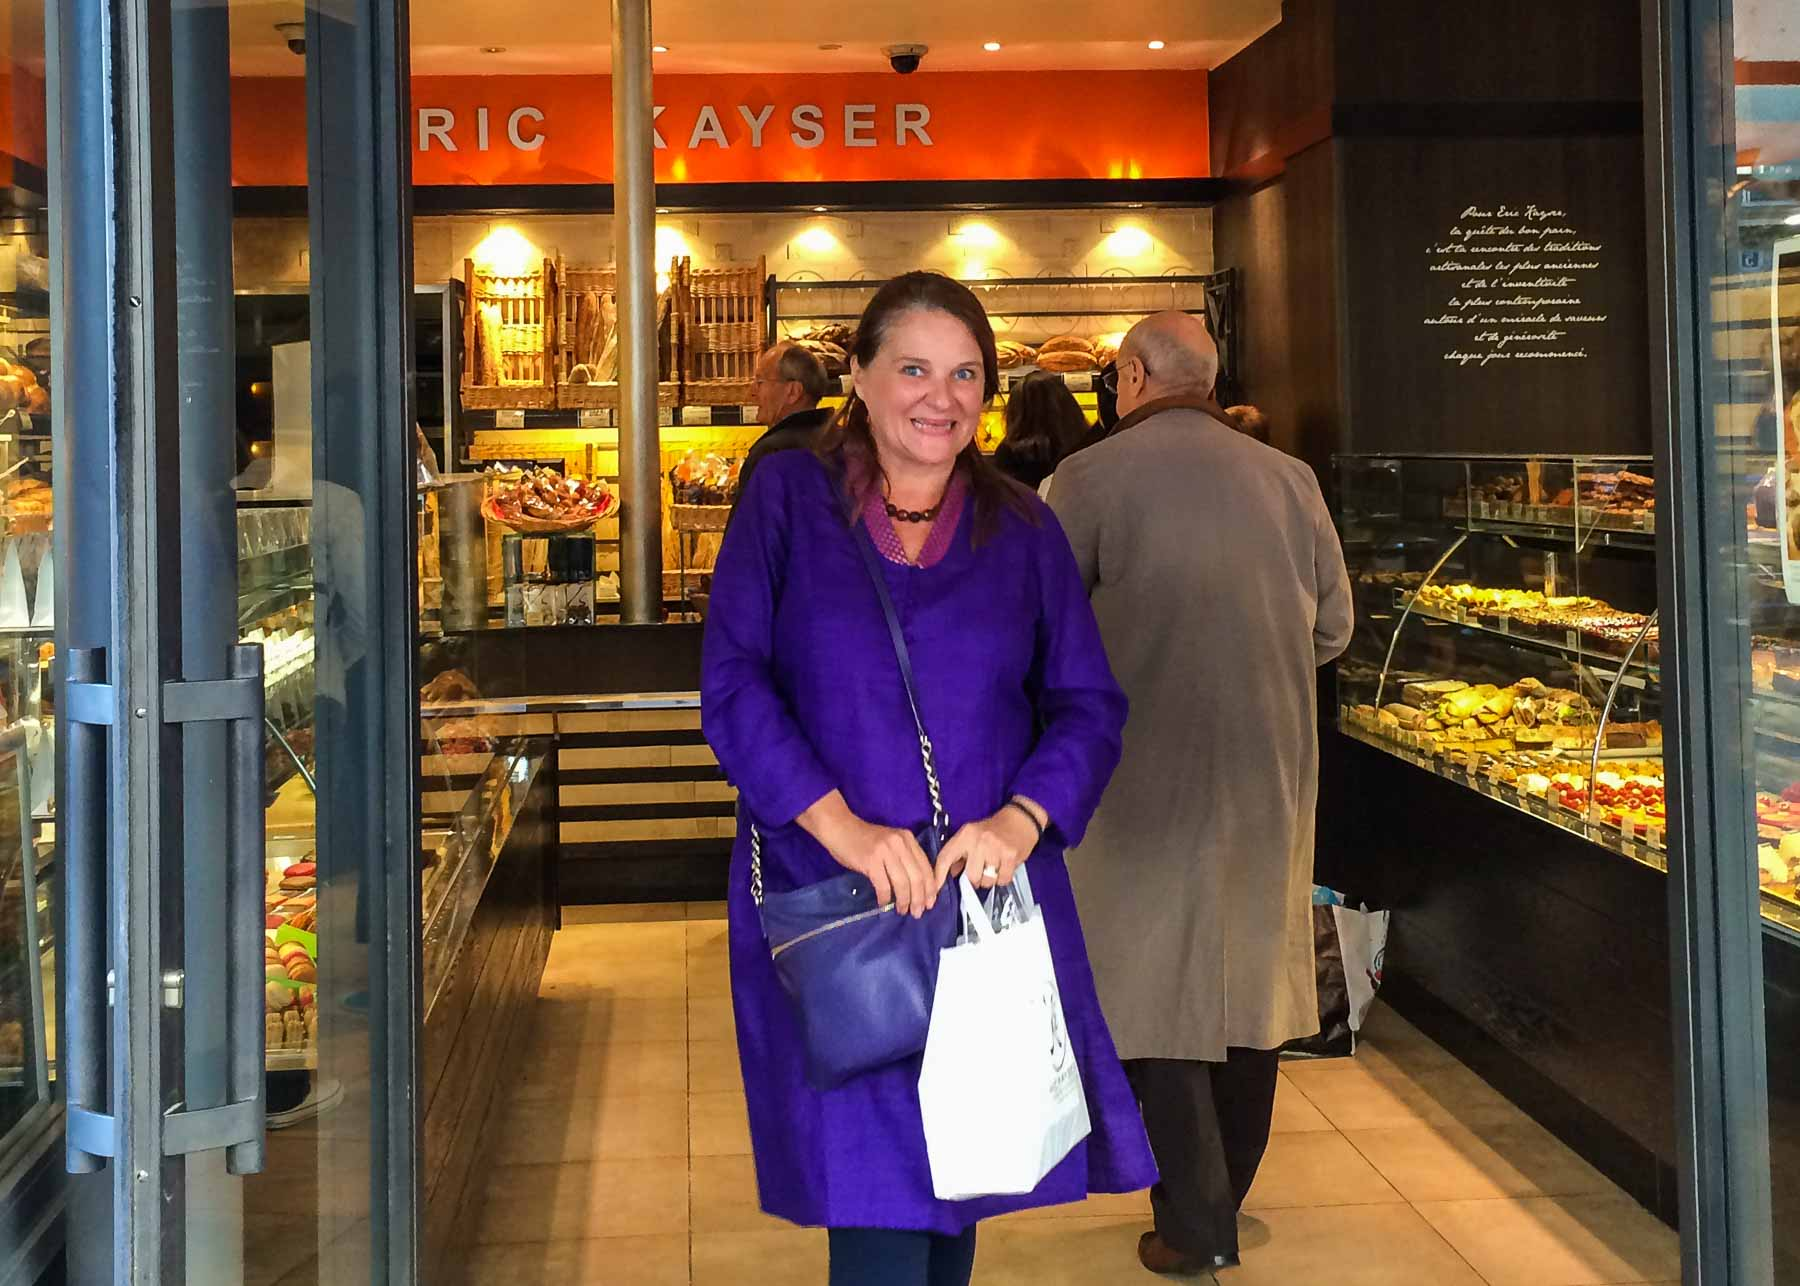 Marlene coming out of Eric Kayser store.